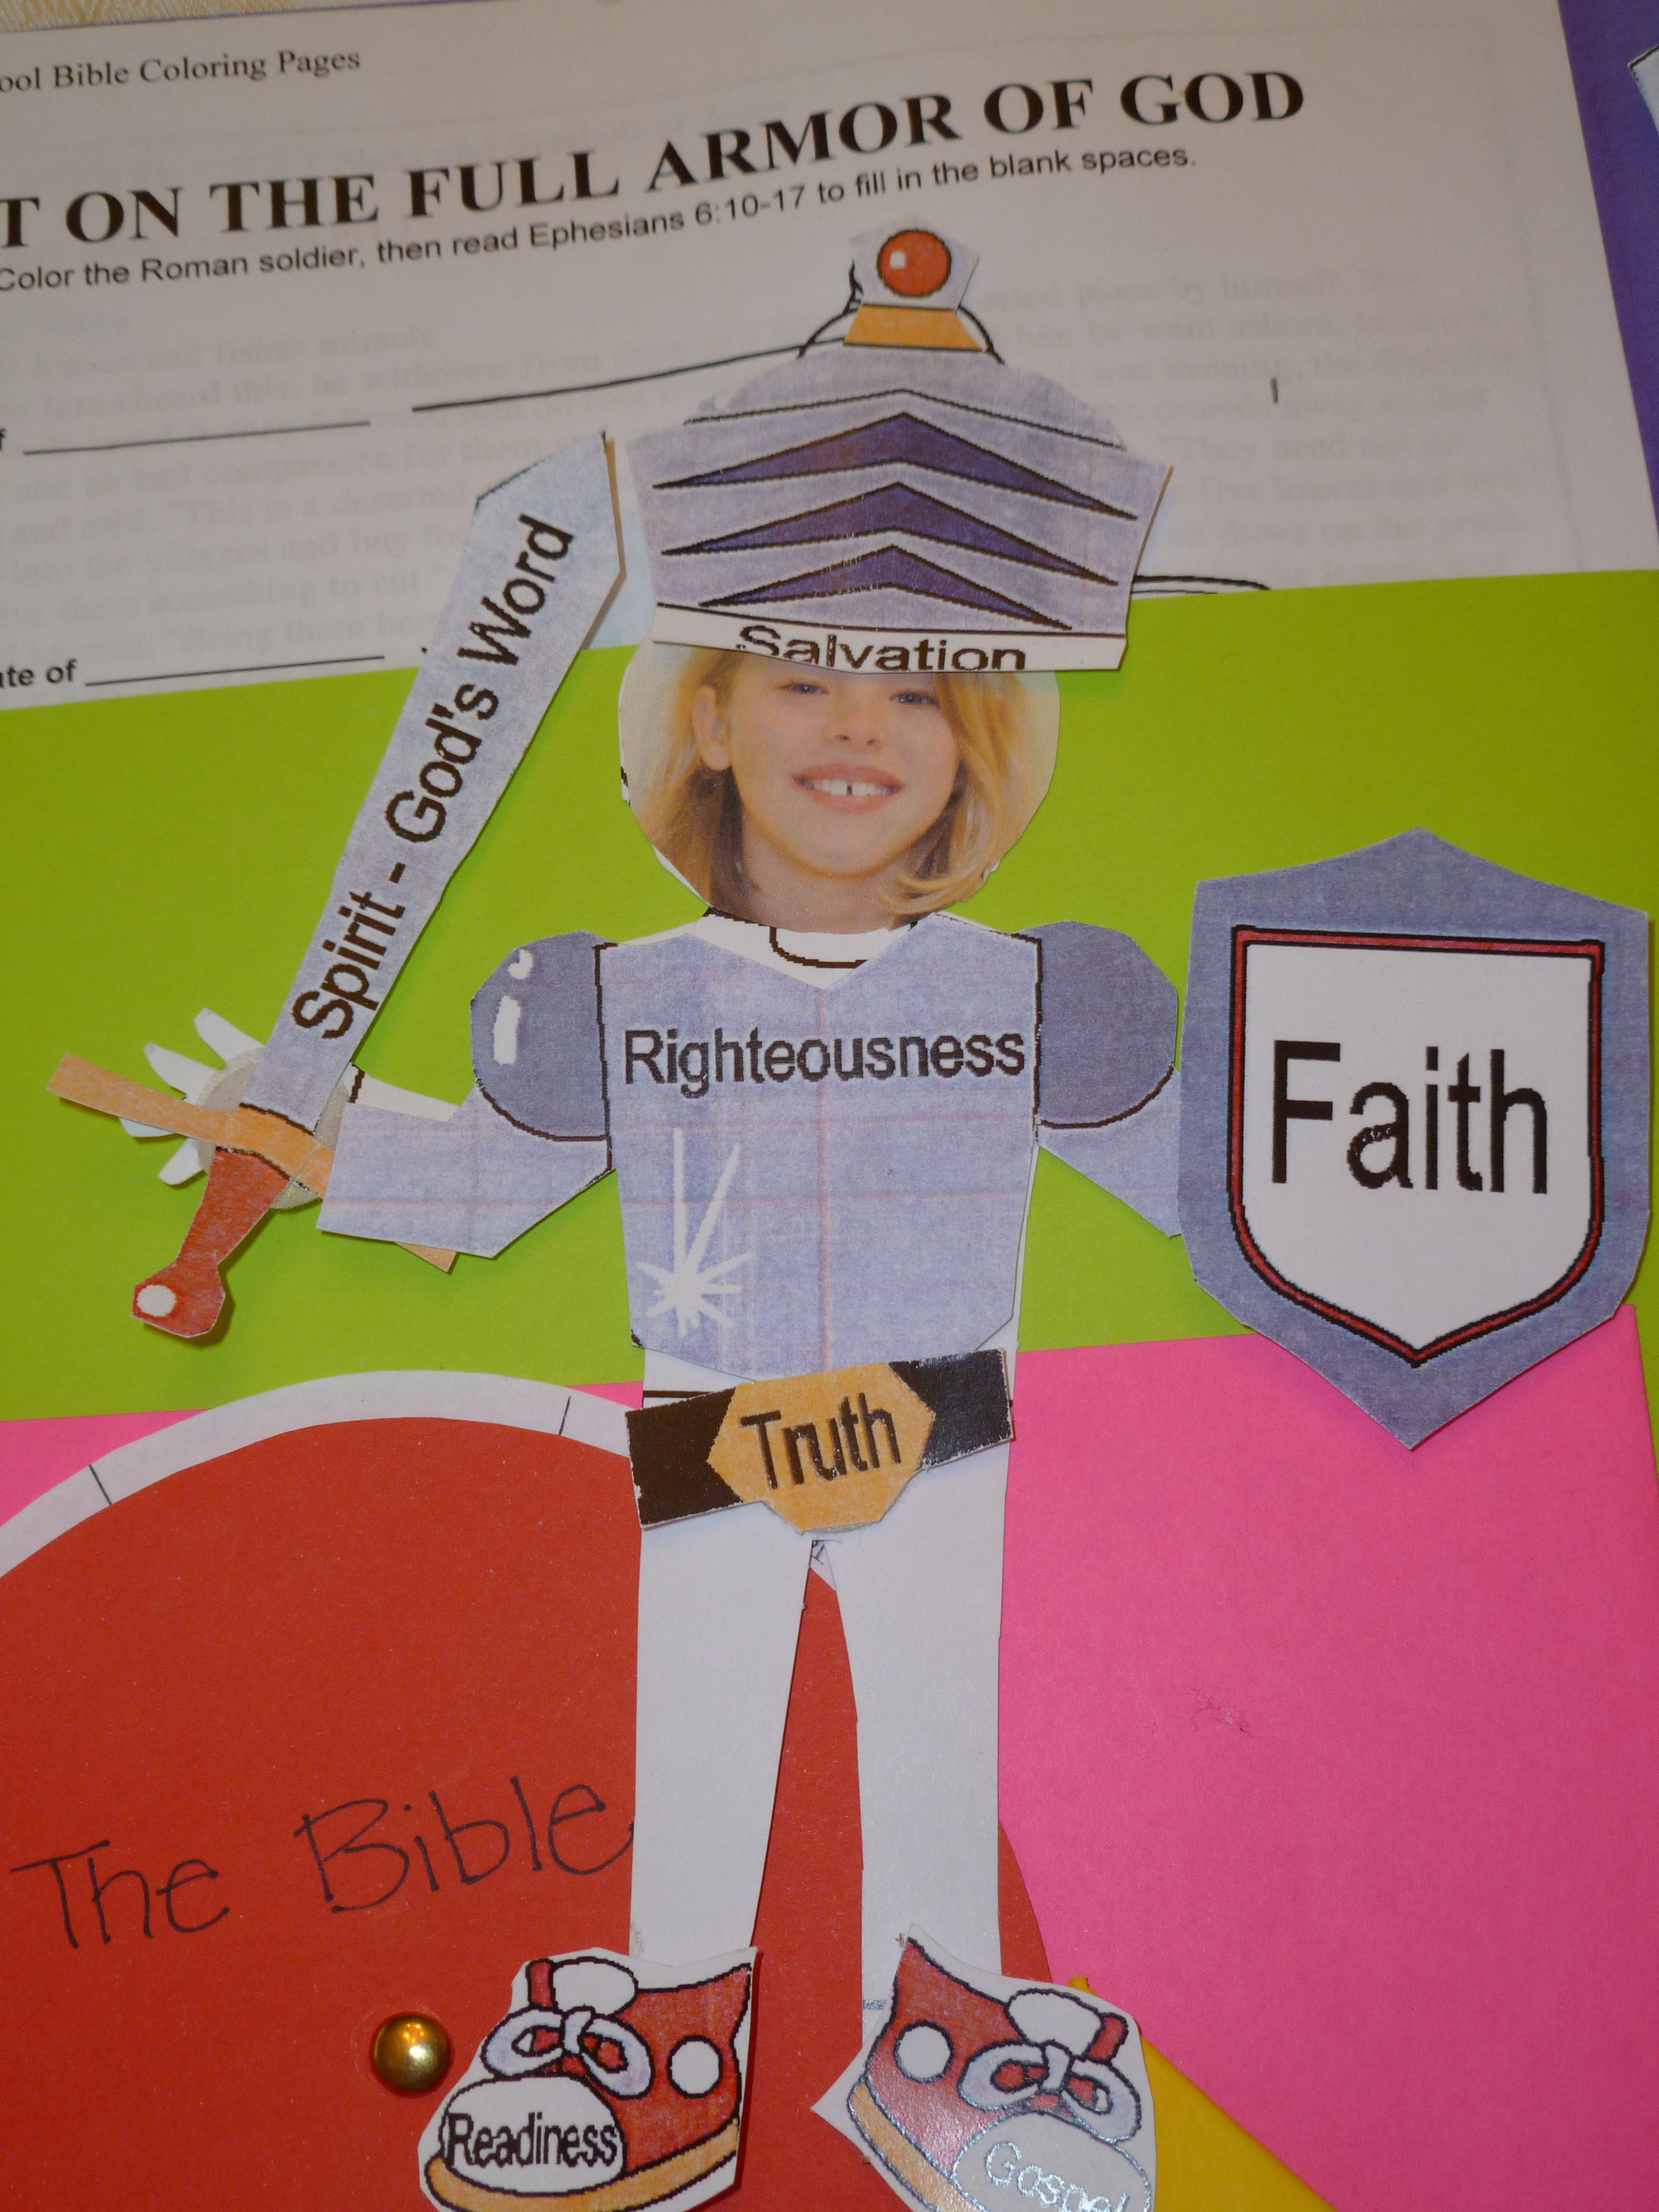 Suiting Upthe Full Armor Of God Study The Bible Lapbook